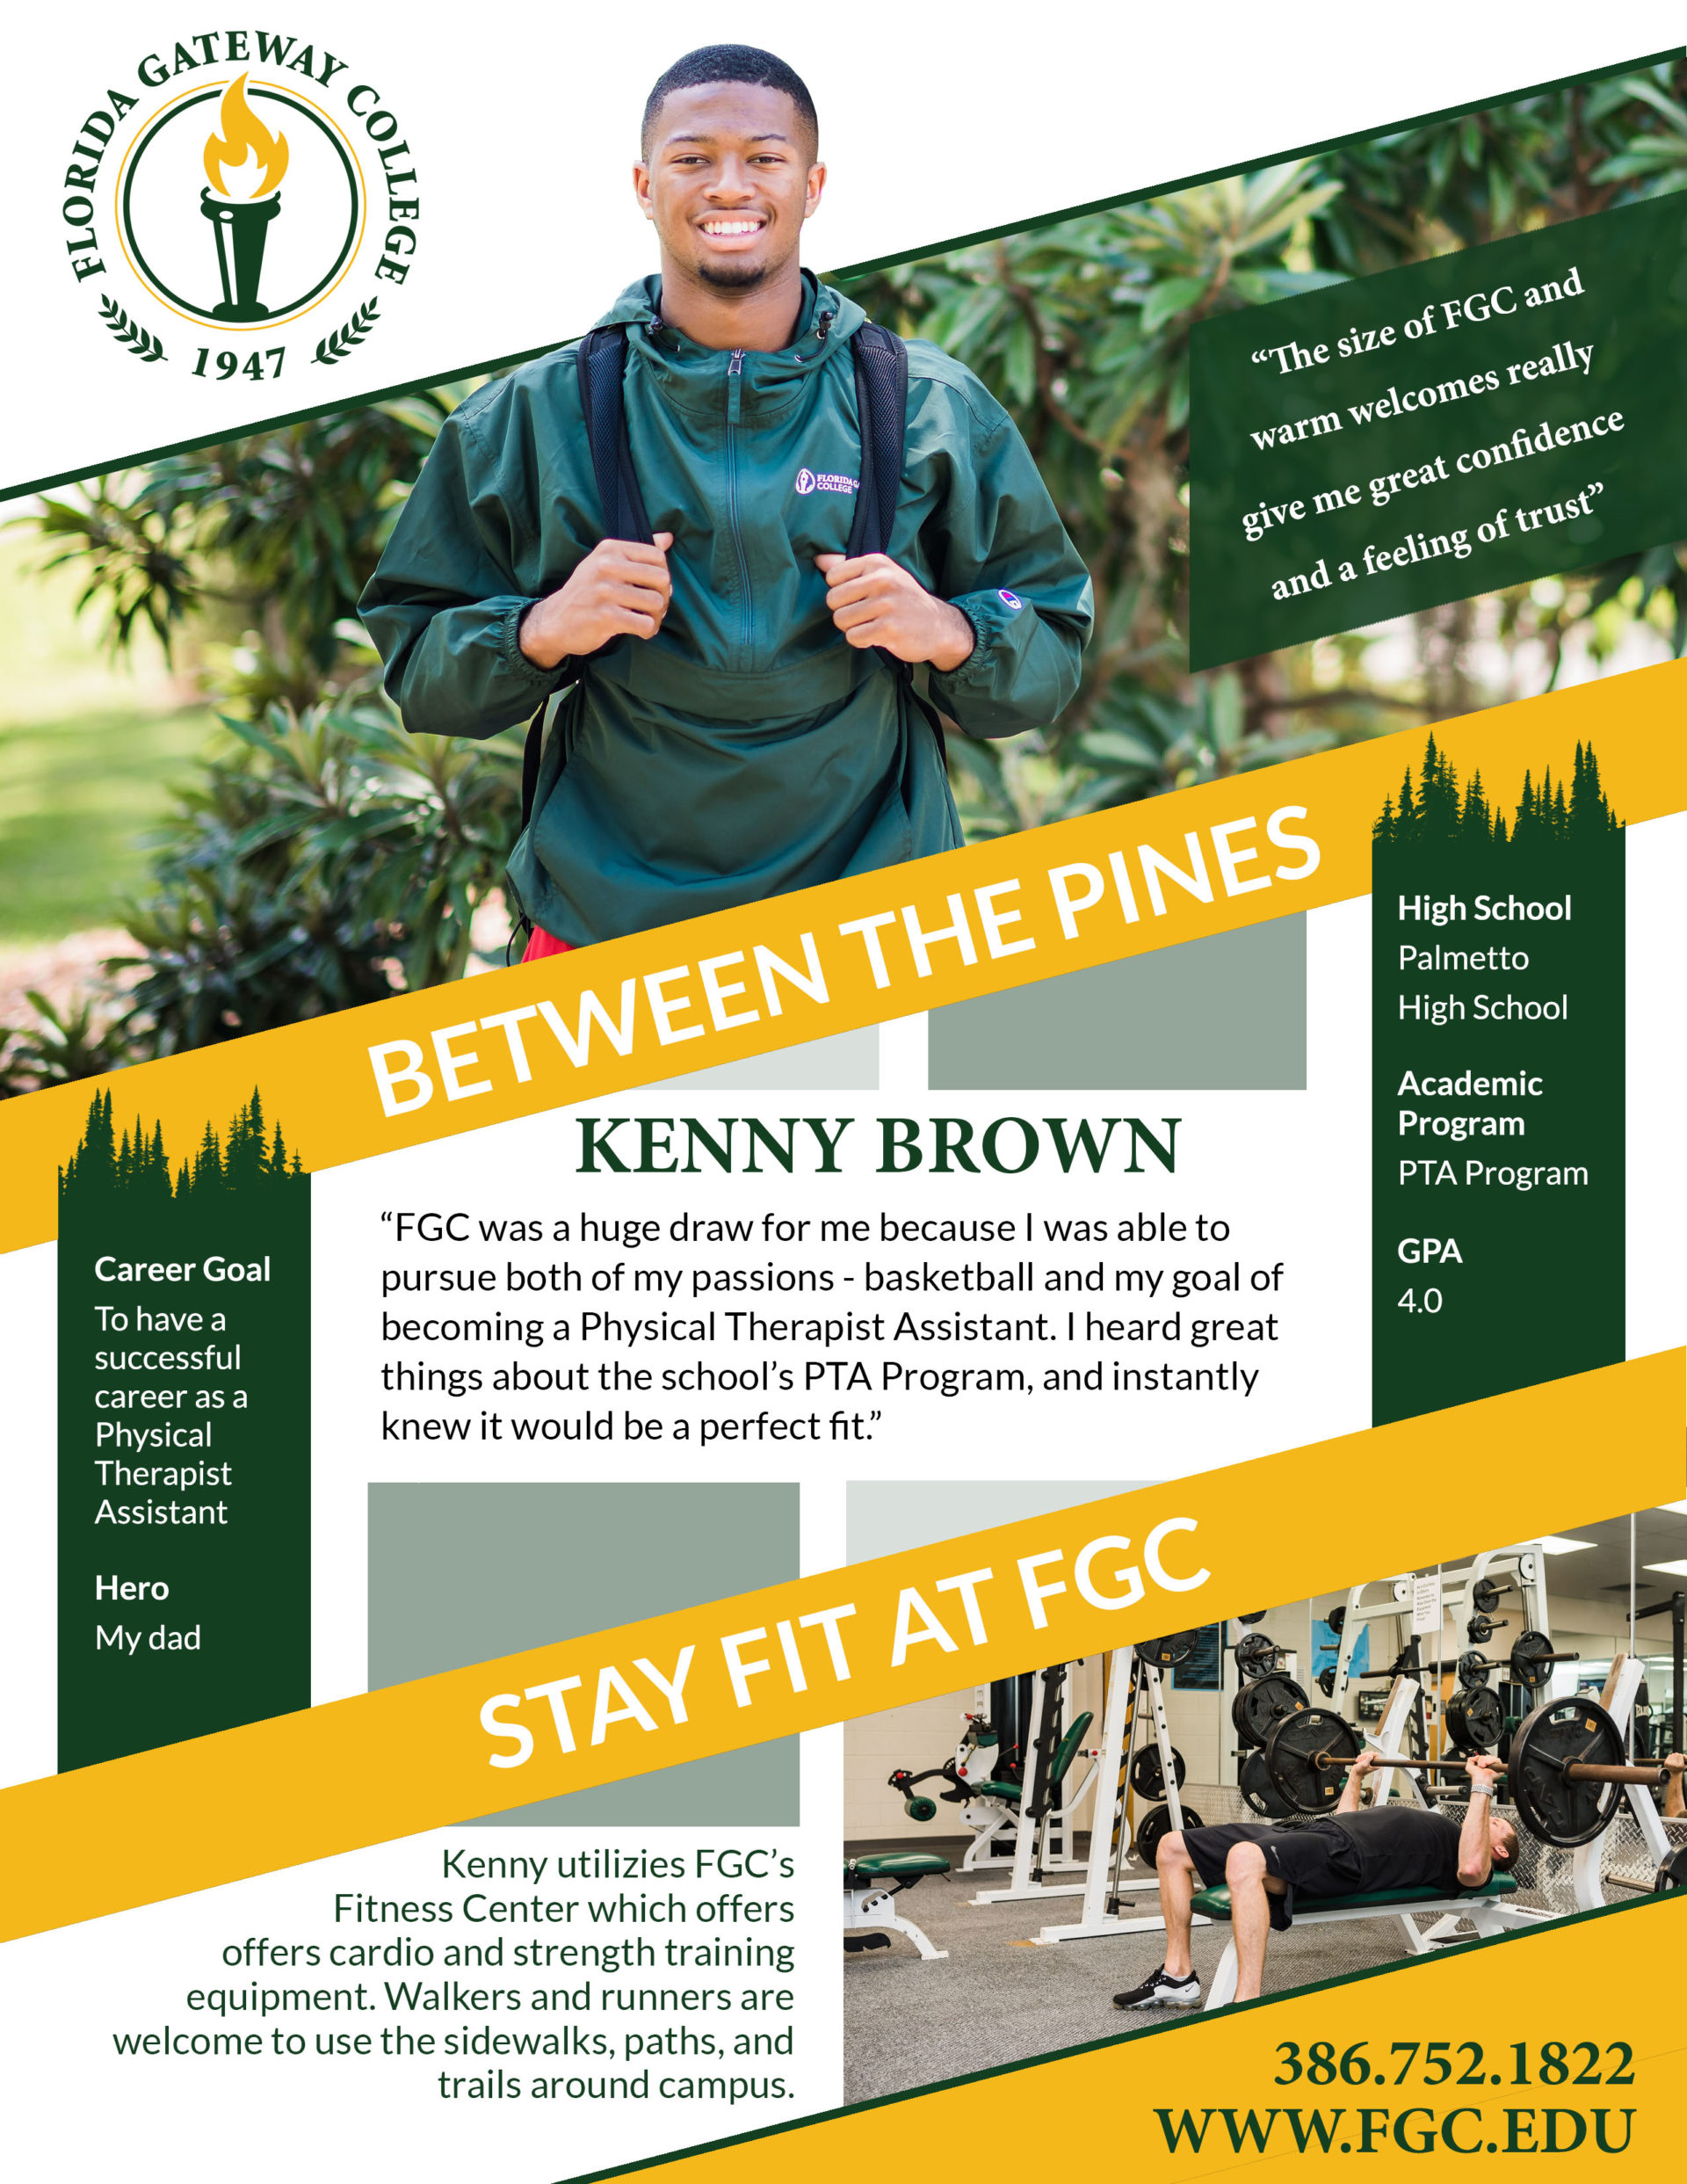 Kenny Brown's Story